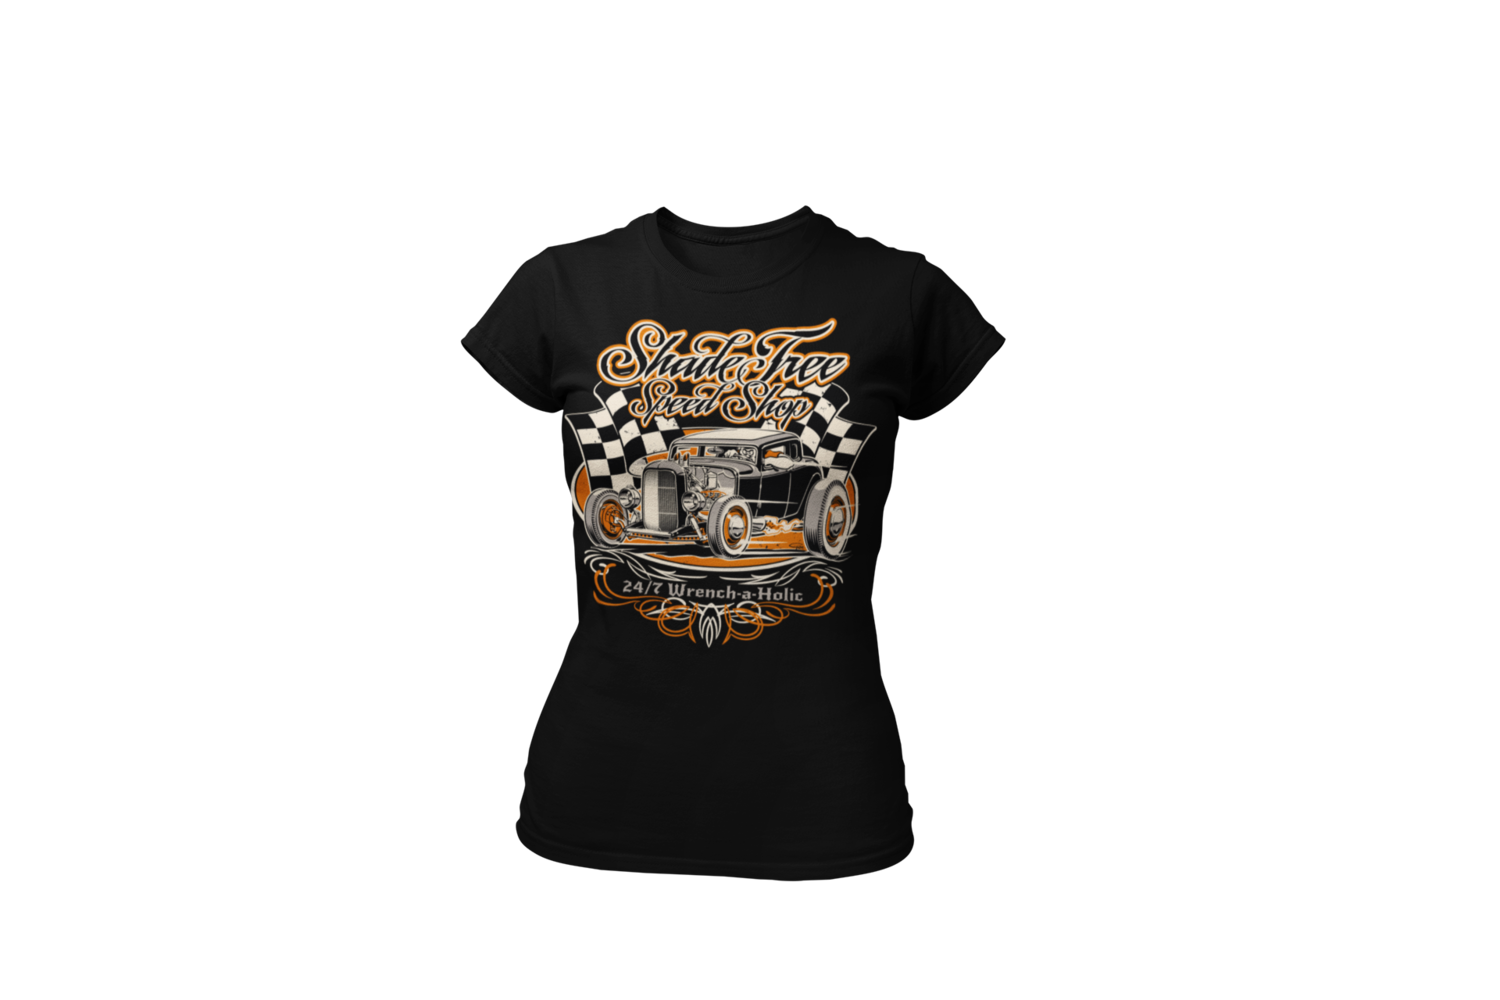 "SHADE TREE SPEED SHOP ""Deuce"" T-SHIRT WOMAN by Ger ""Dutch Courage"" Peters artwork"